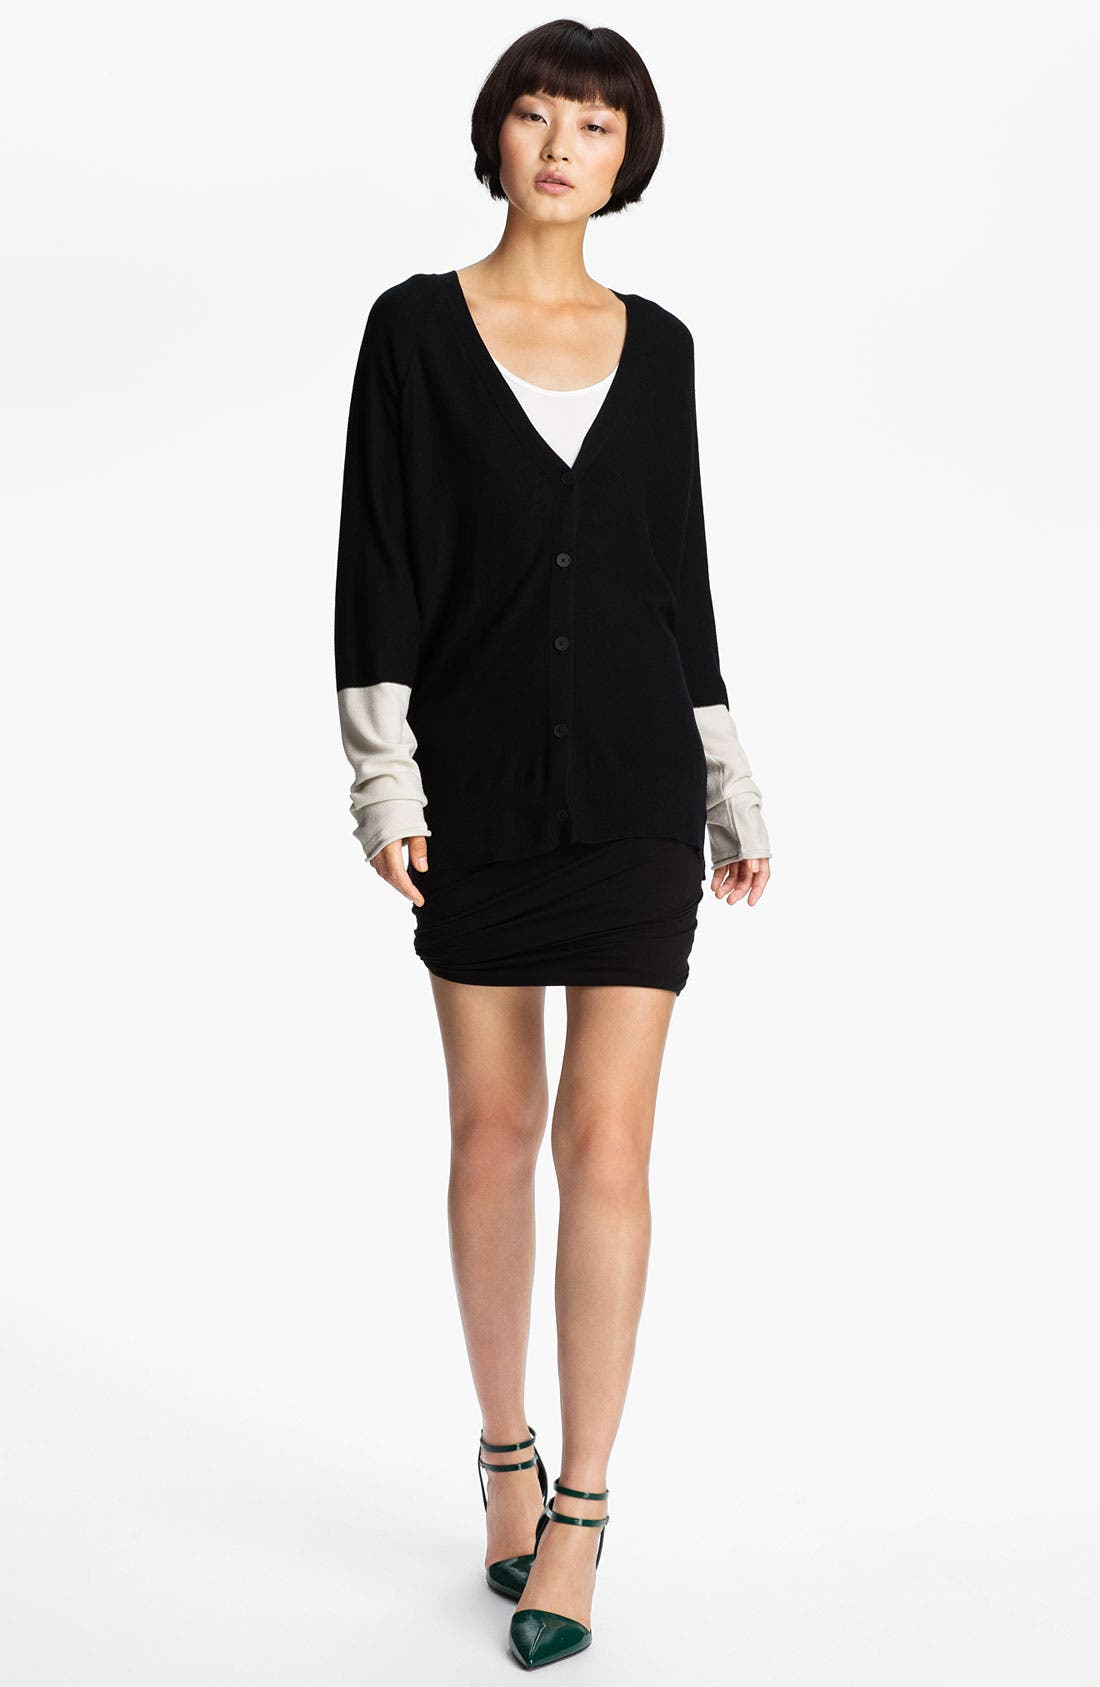 Alternate Image 1 Selected - T by Alexander Wang Colorblock Cardigan